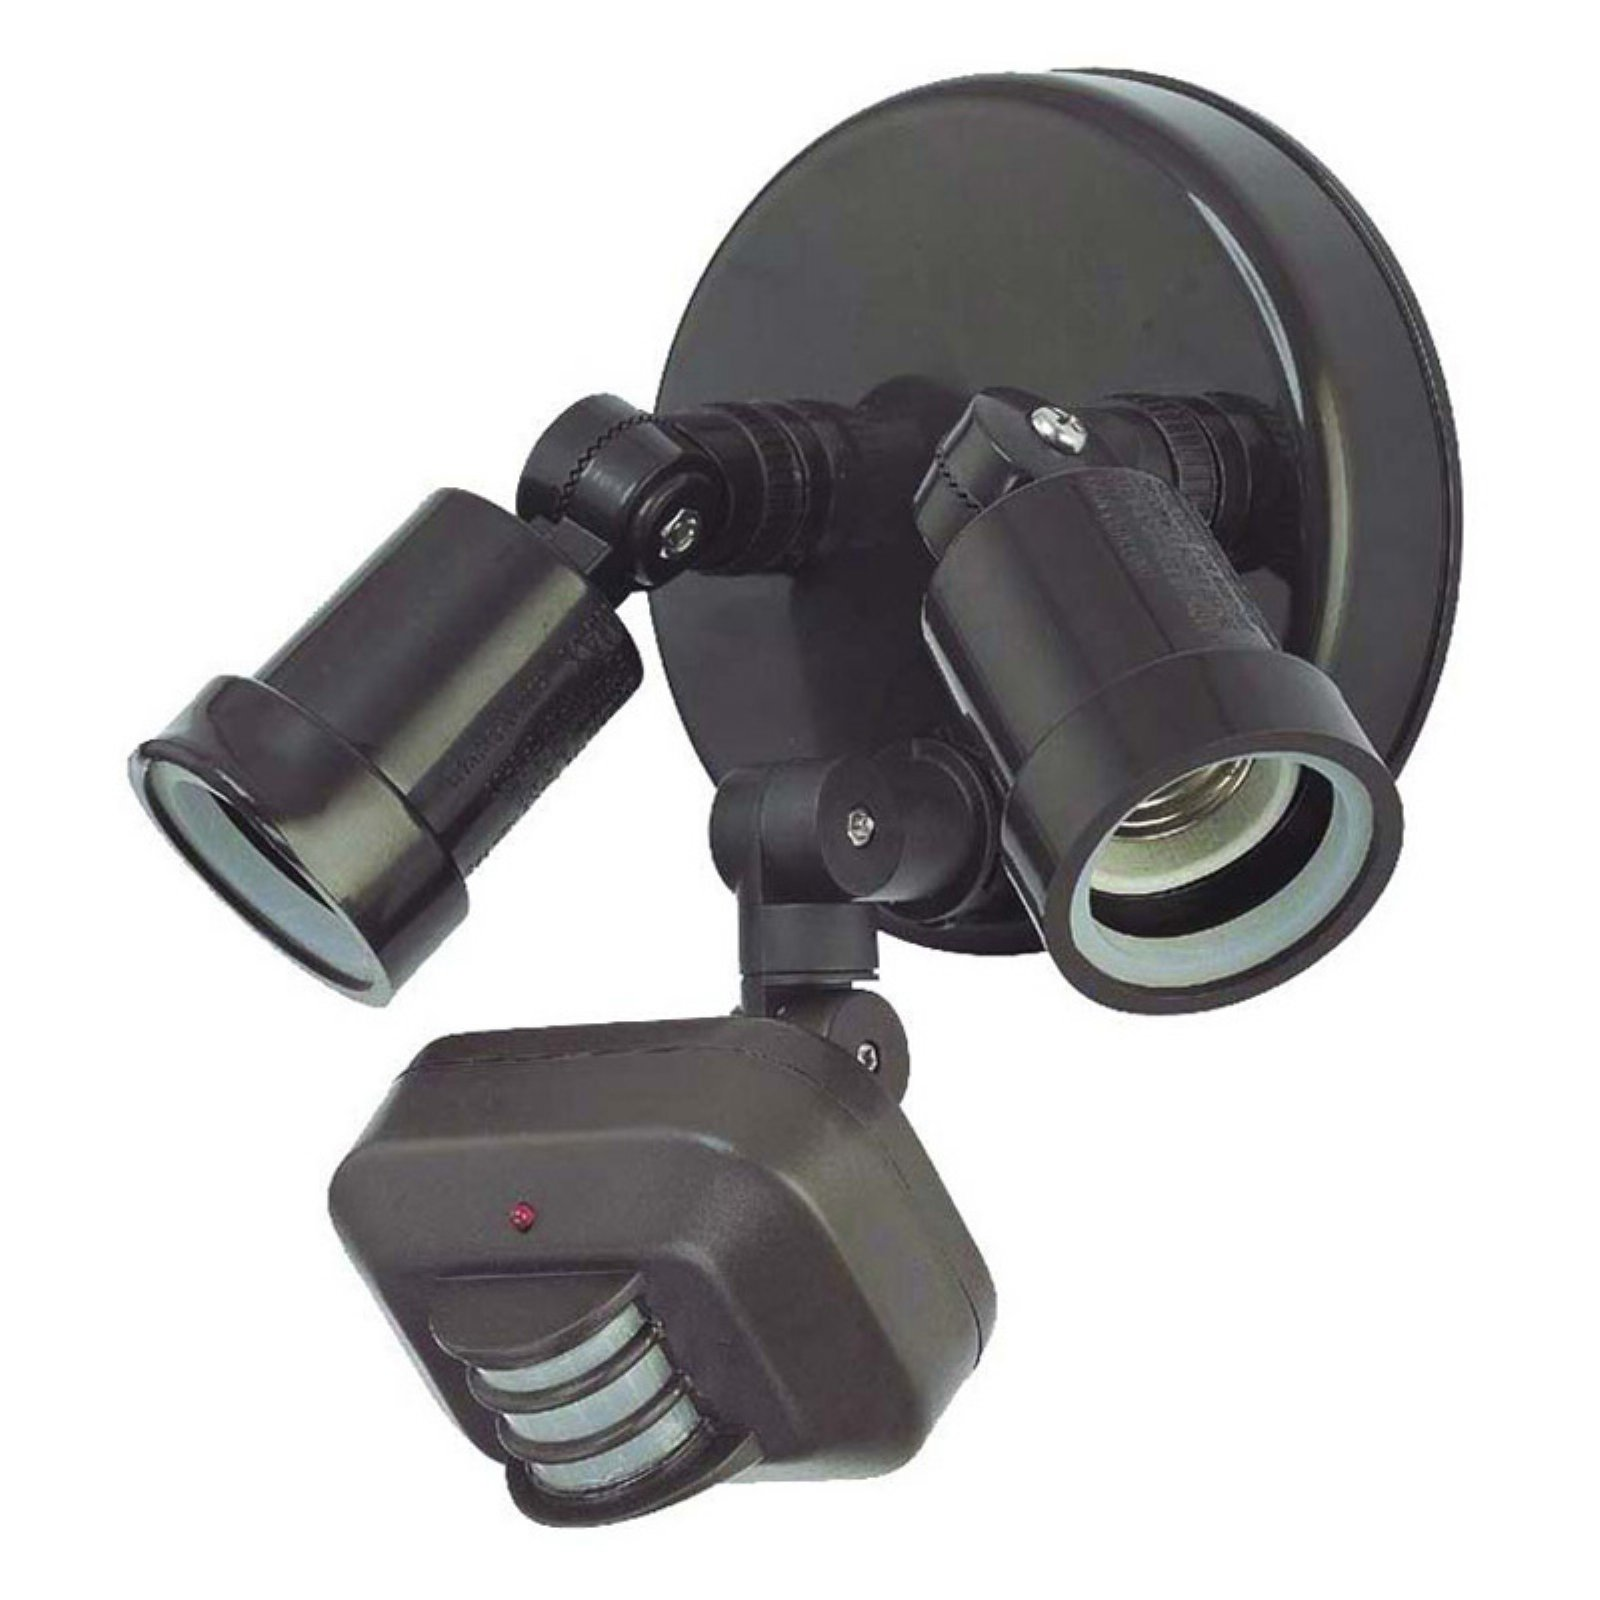 Acclaim Lighting Motion Activated Floodlights 8 in. Outdoor Light Fixture